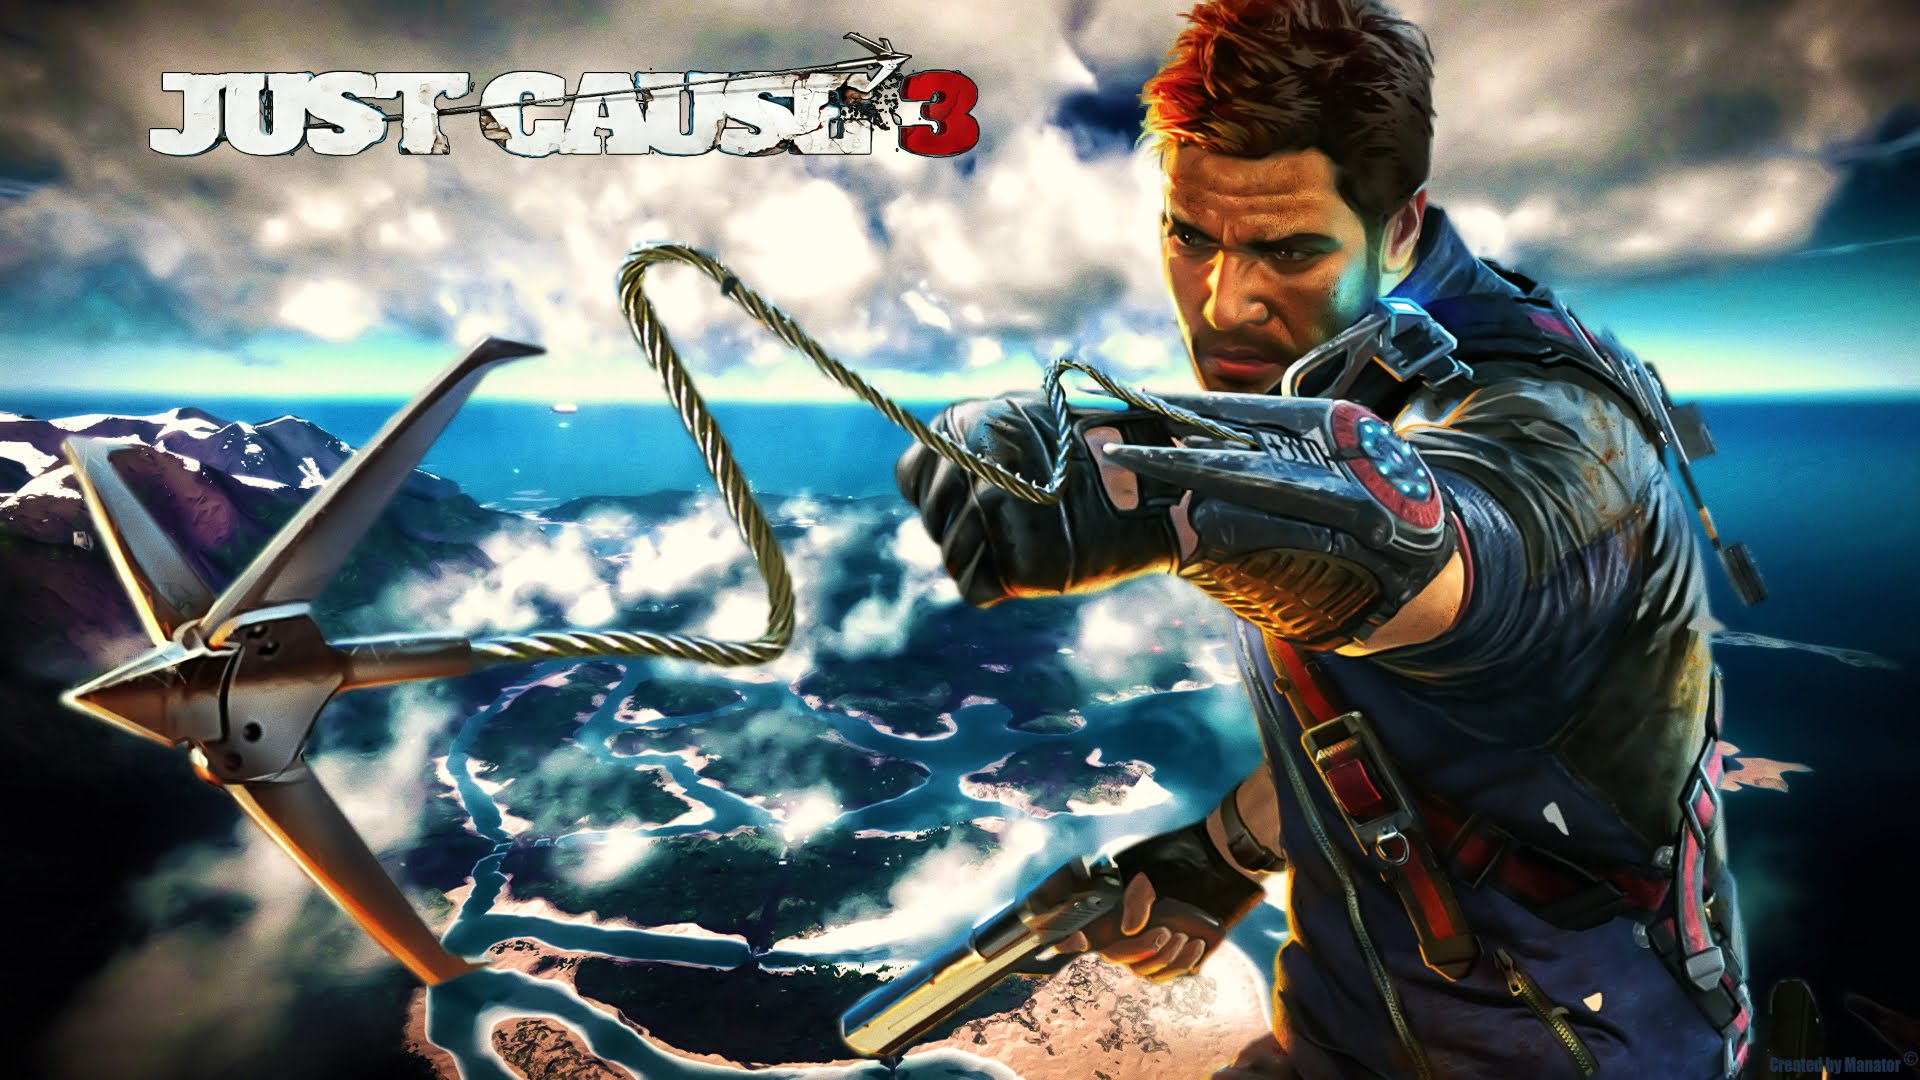 Just Cause 3 [Digital code] only USA store